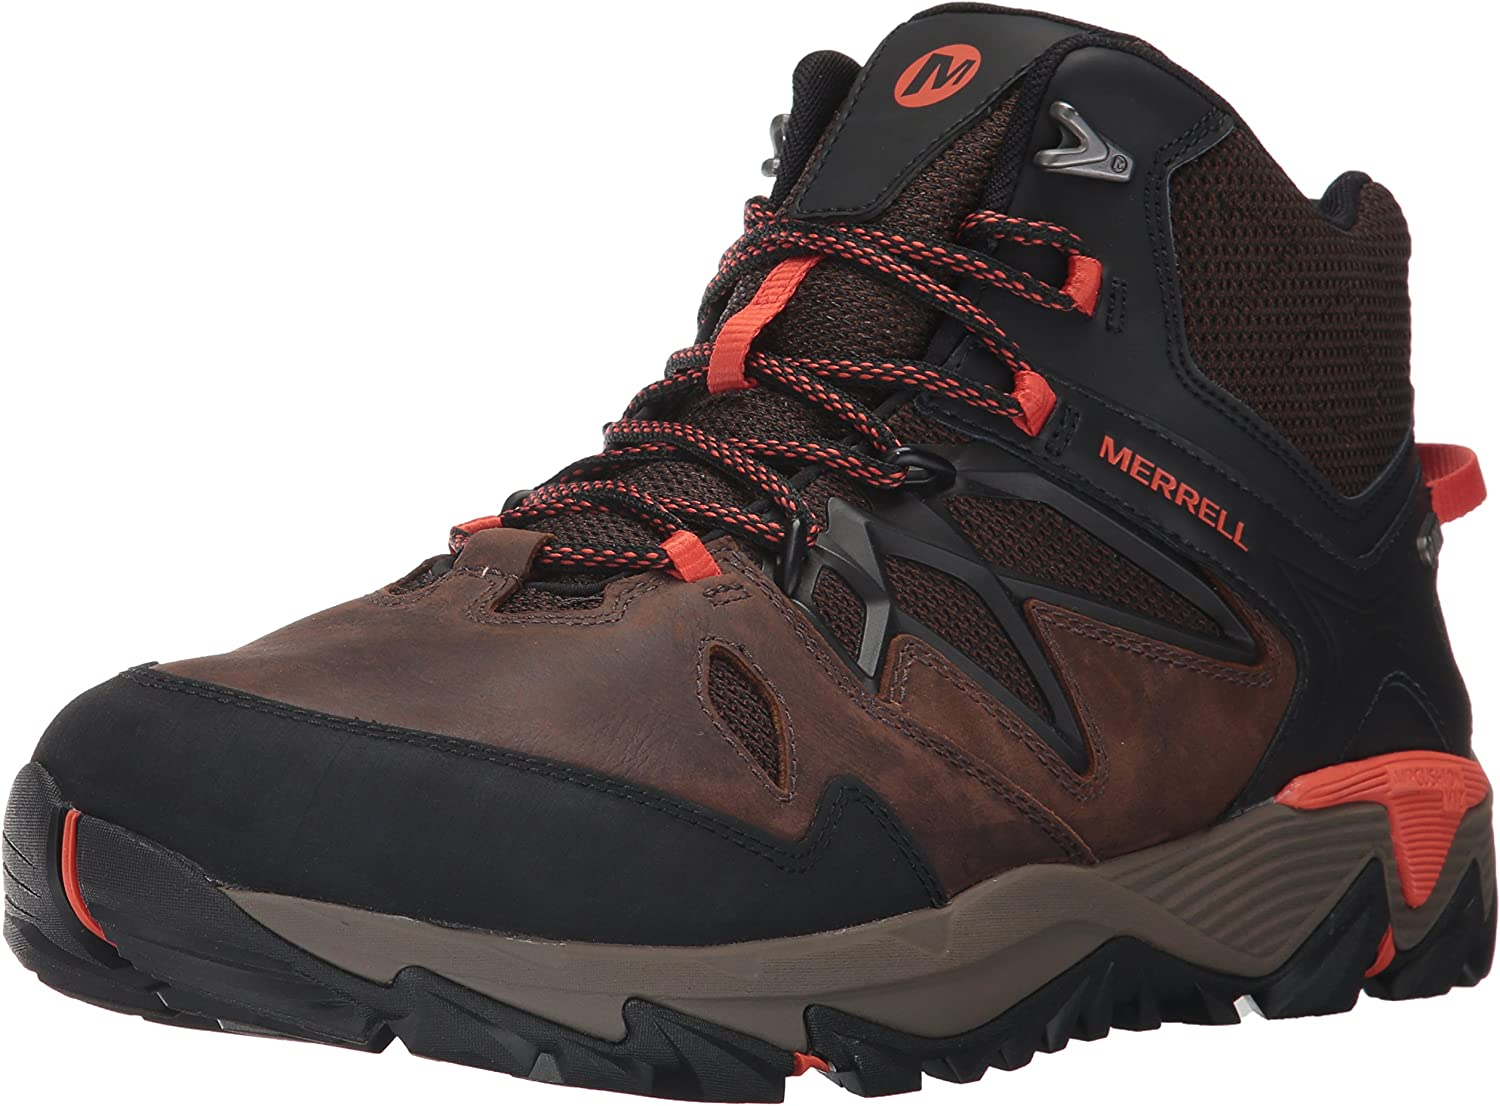 Merrell Men's tutti Out Blaze 2 Mid Waterproof Hire avvio, Clay, 9.5 M US